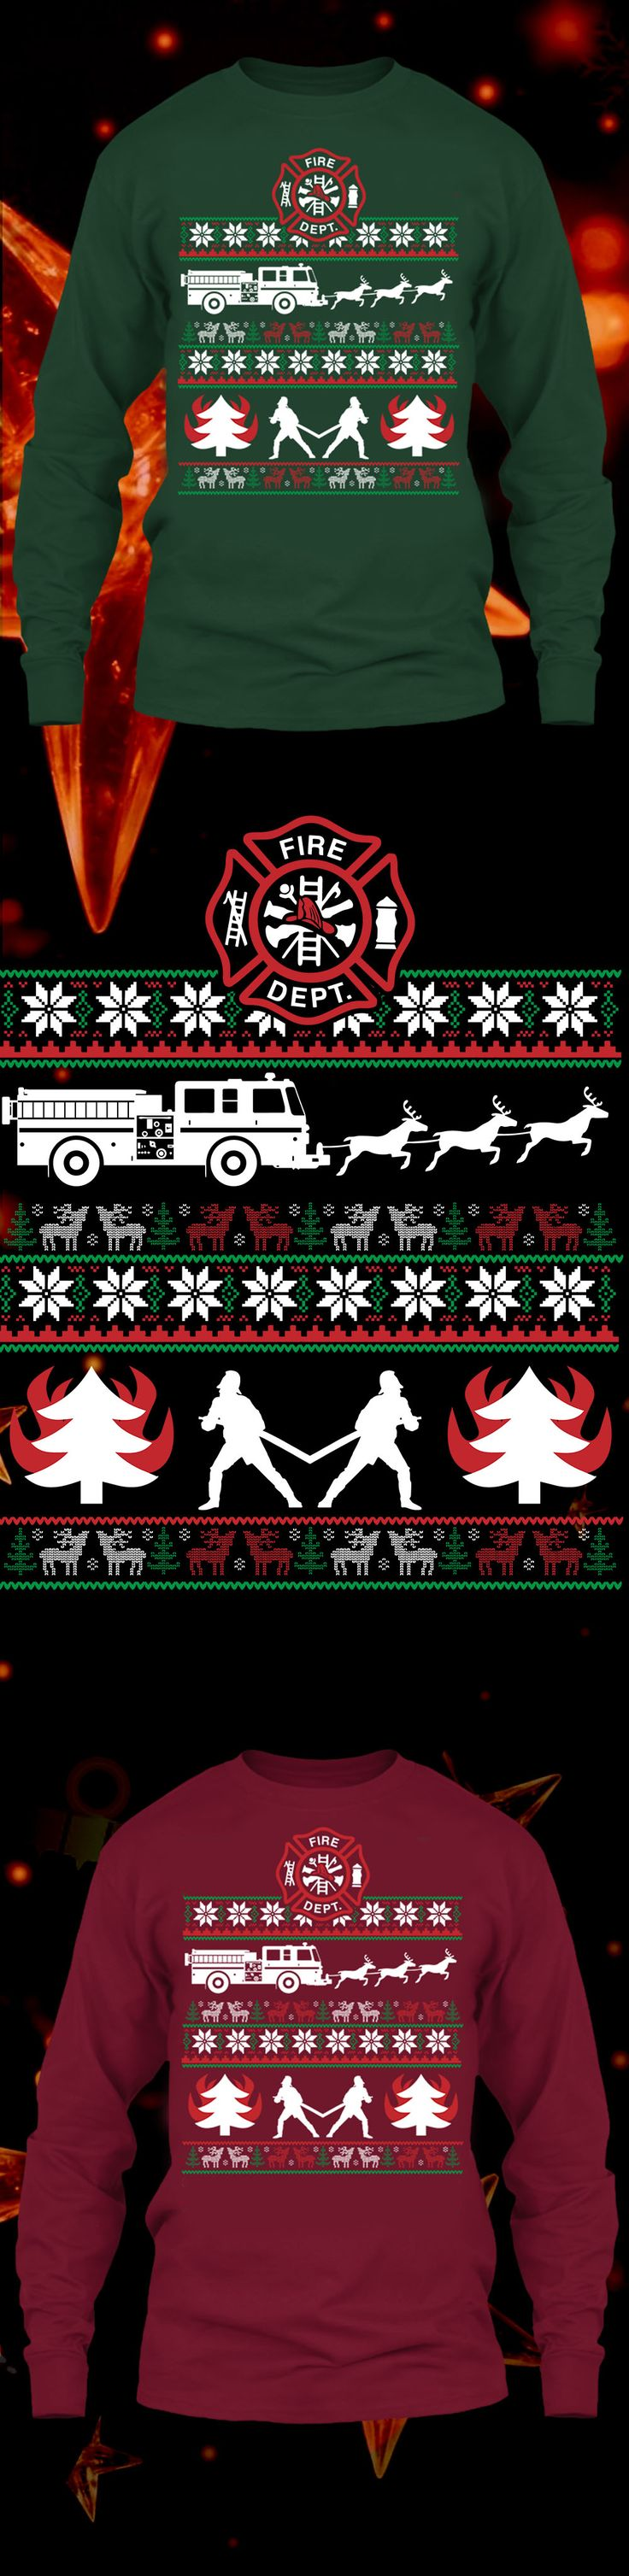 Firefighter Christmas Sweater - Get this limited edition ugly Christmas Sweater just in time for the holidays! Only 2 days left for FREE SHIPPING, click to buy now!